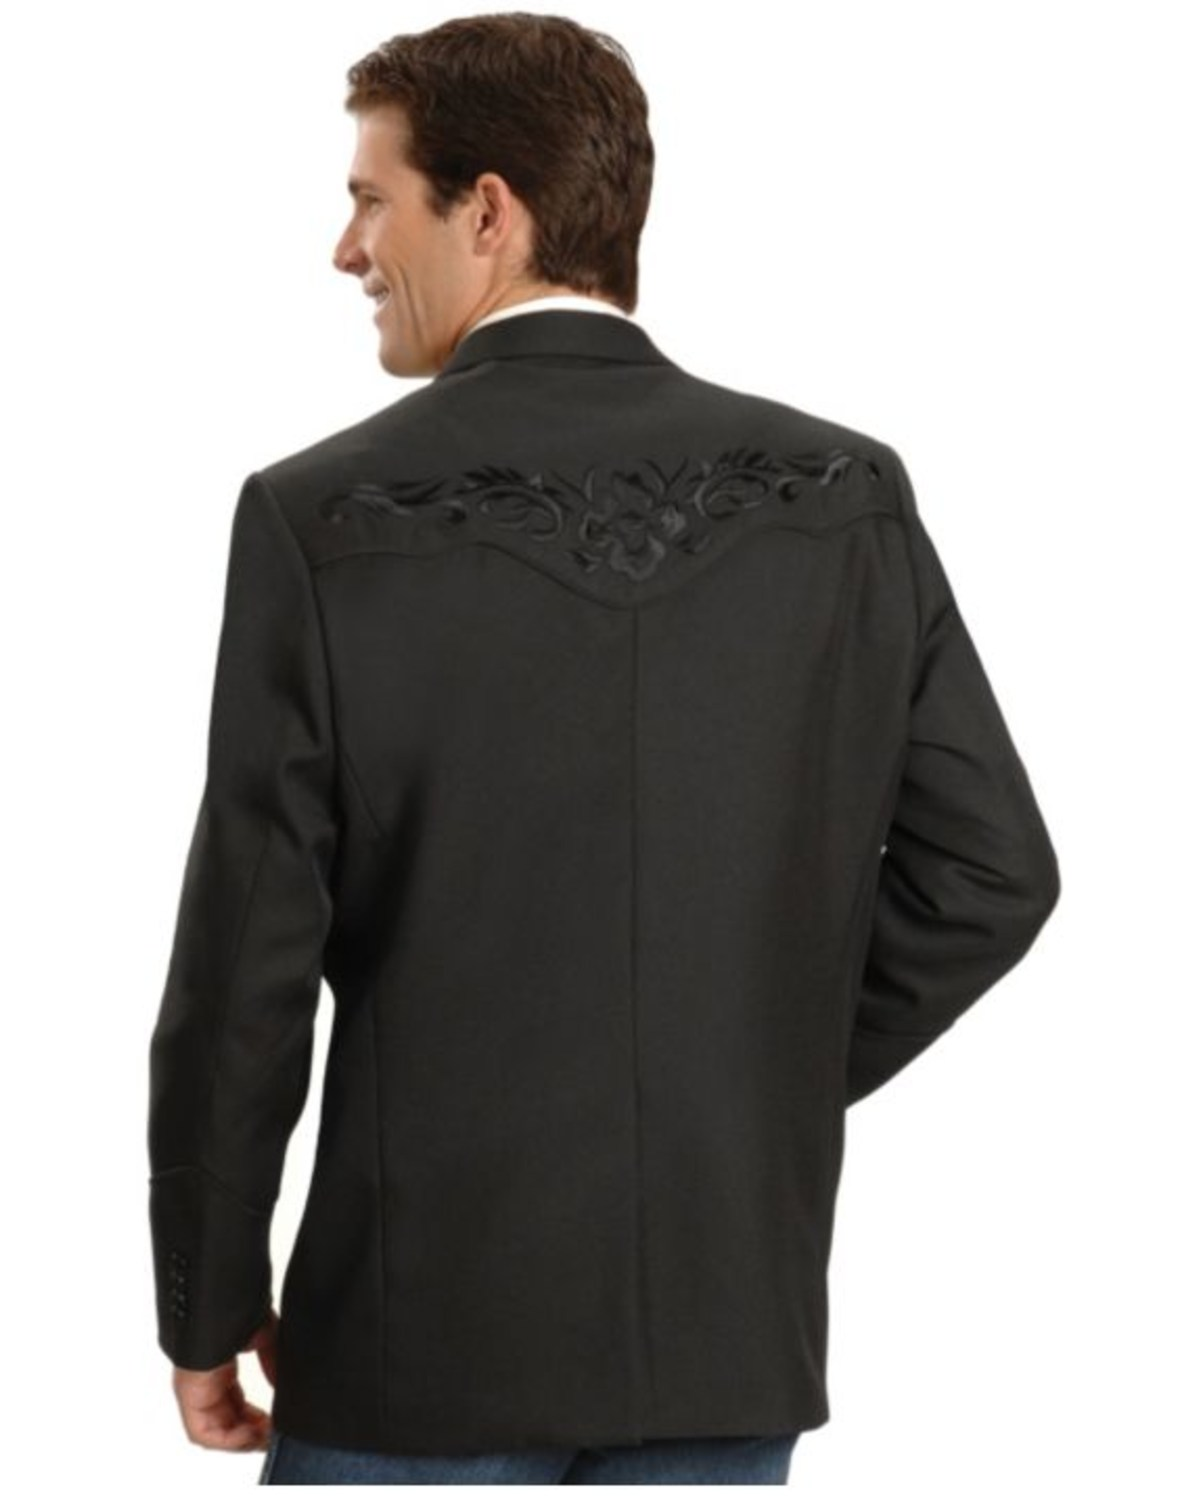 Scully Black Floral Embroidered Western Jacket Boot Barn